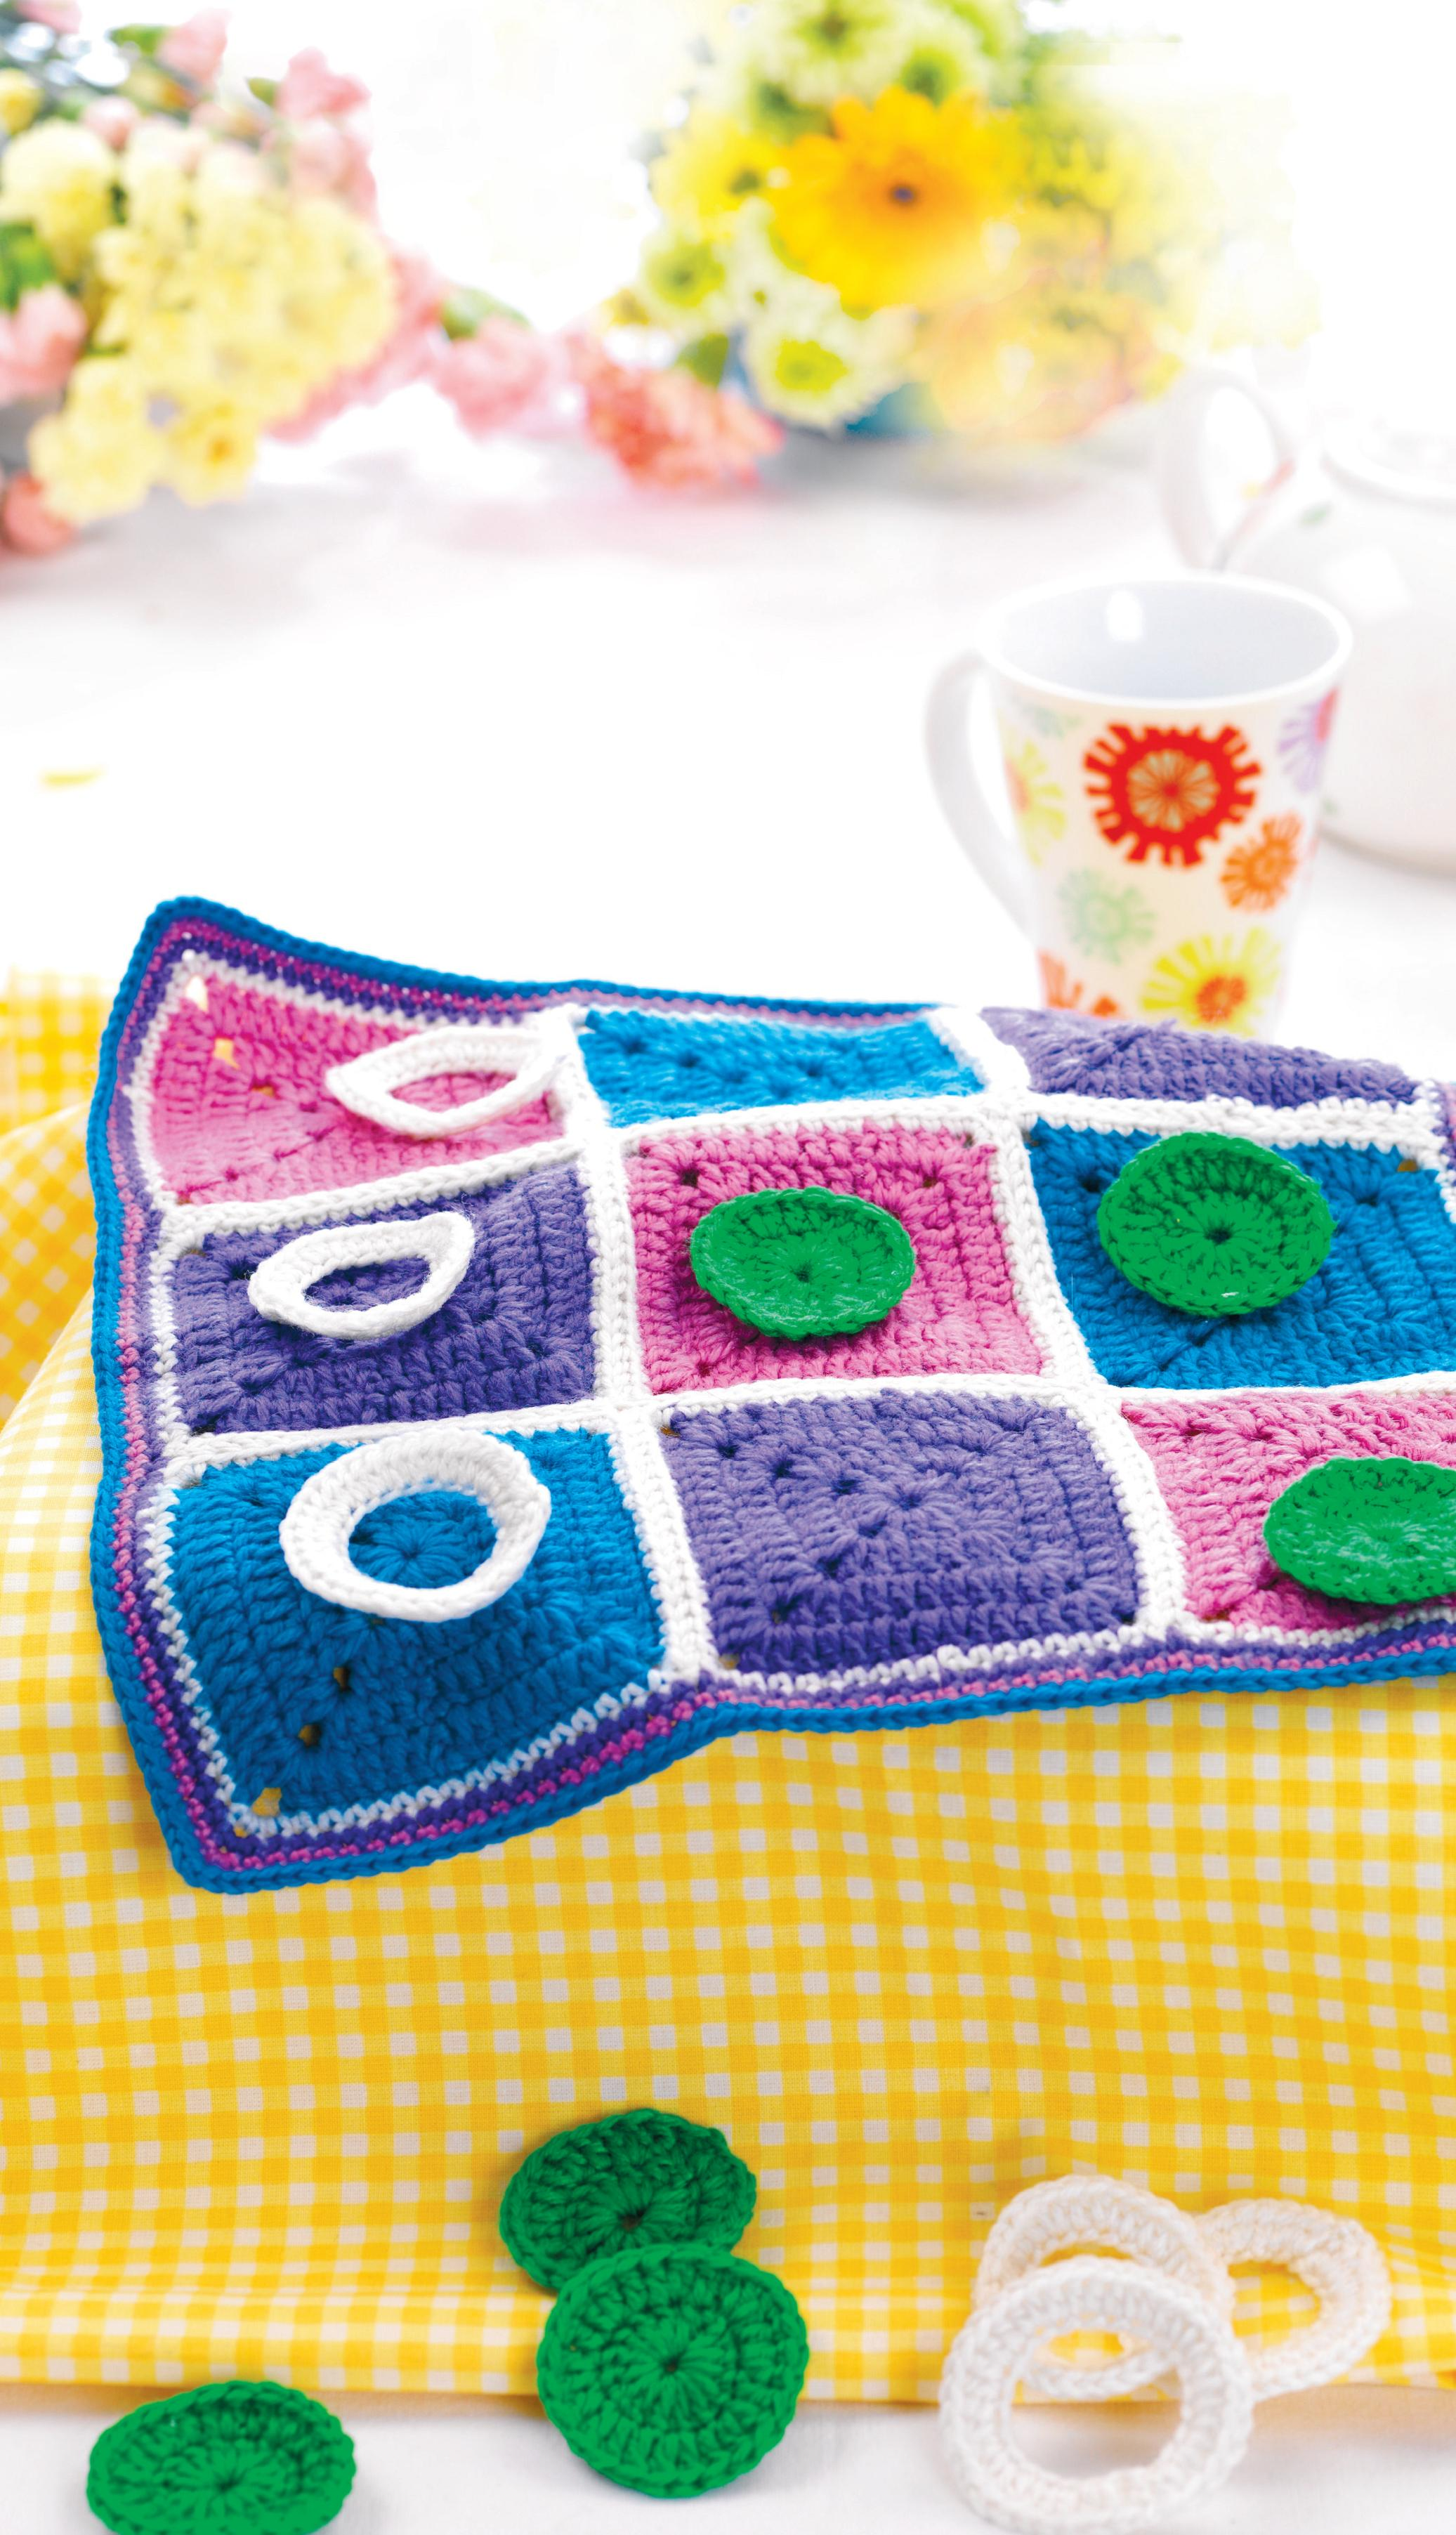 Free Crochet Patterns Games : Crochet tic-tac-toe game Crochet Pattern